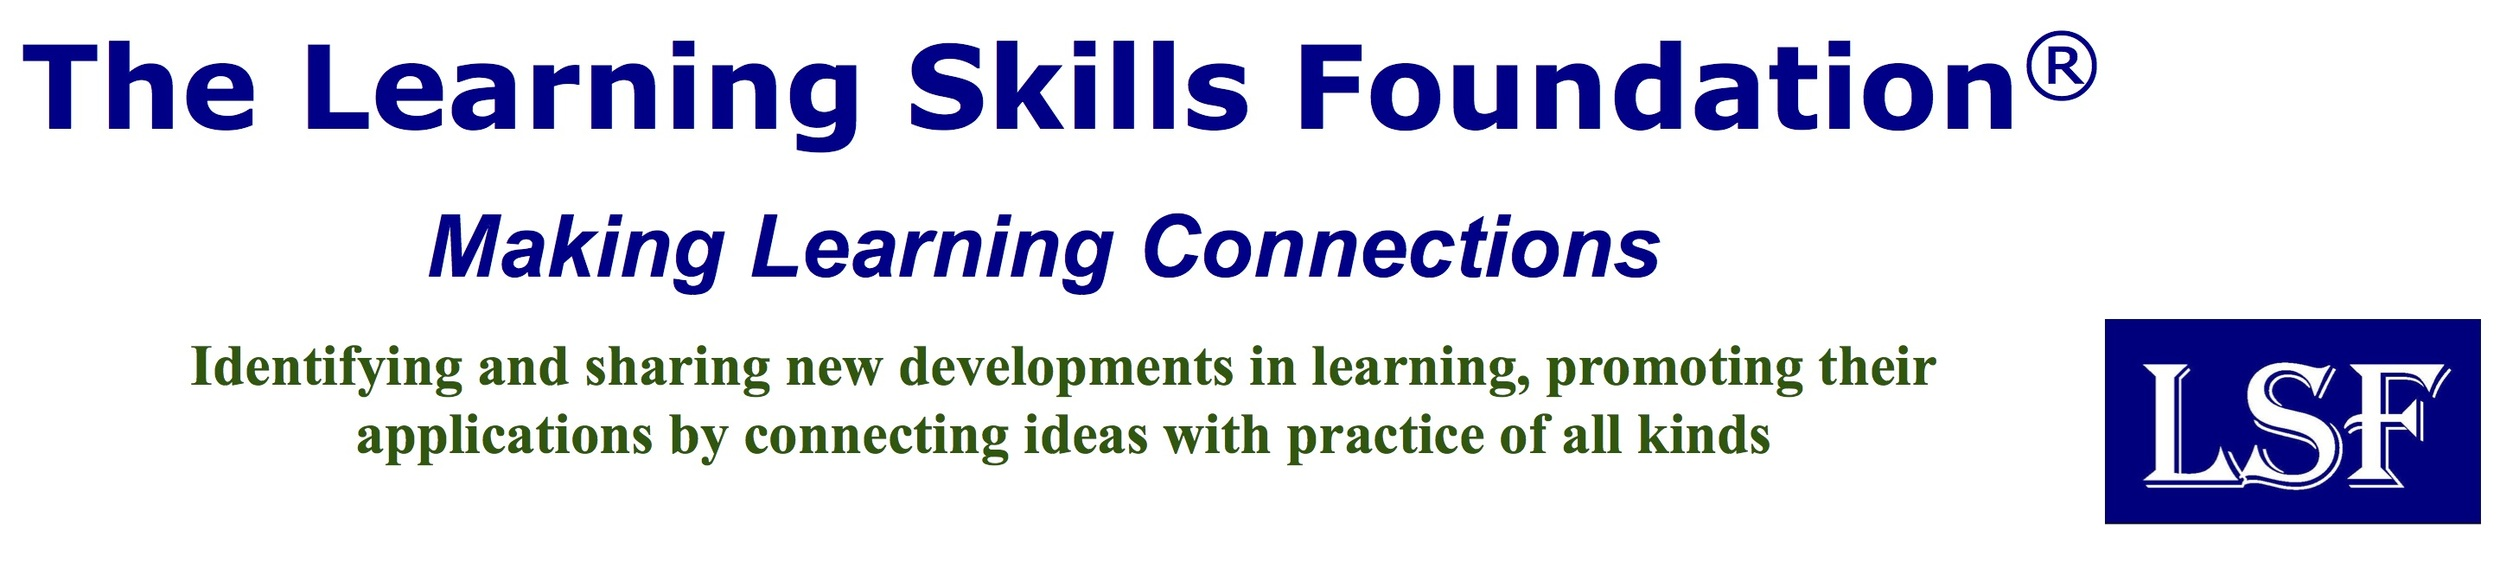 The Learning Skills Foundation